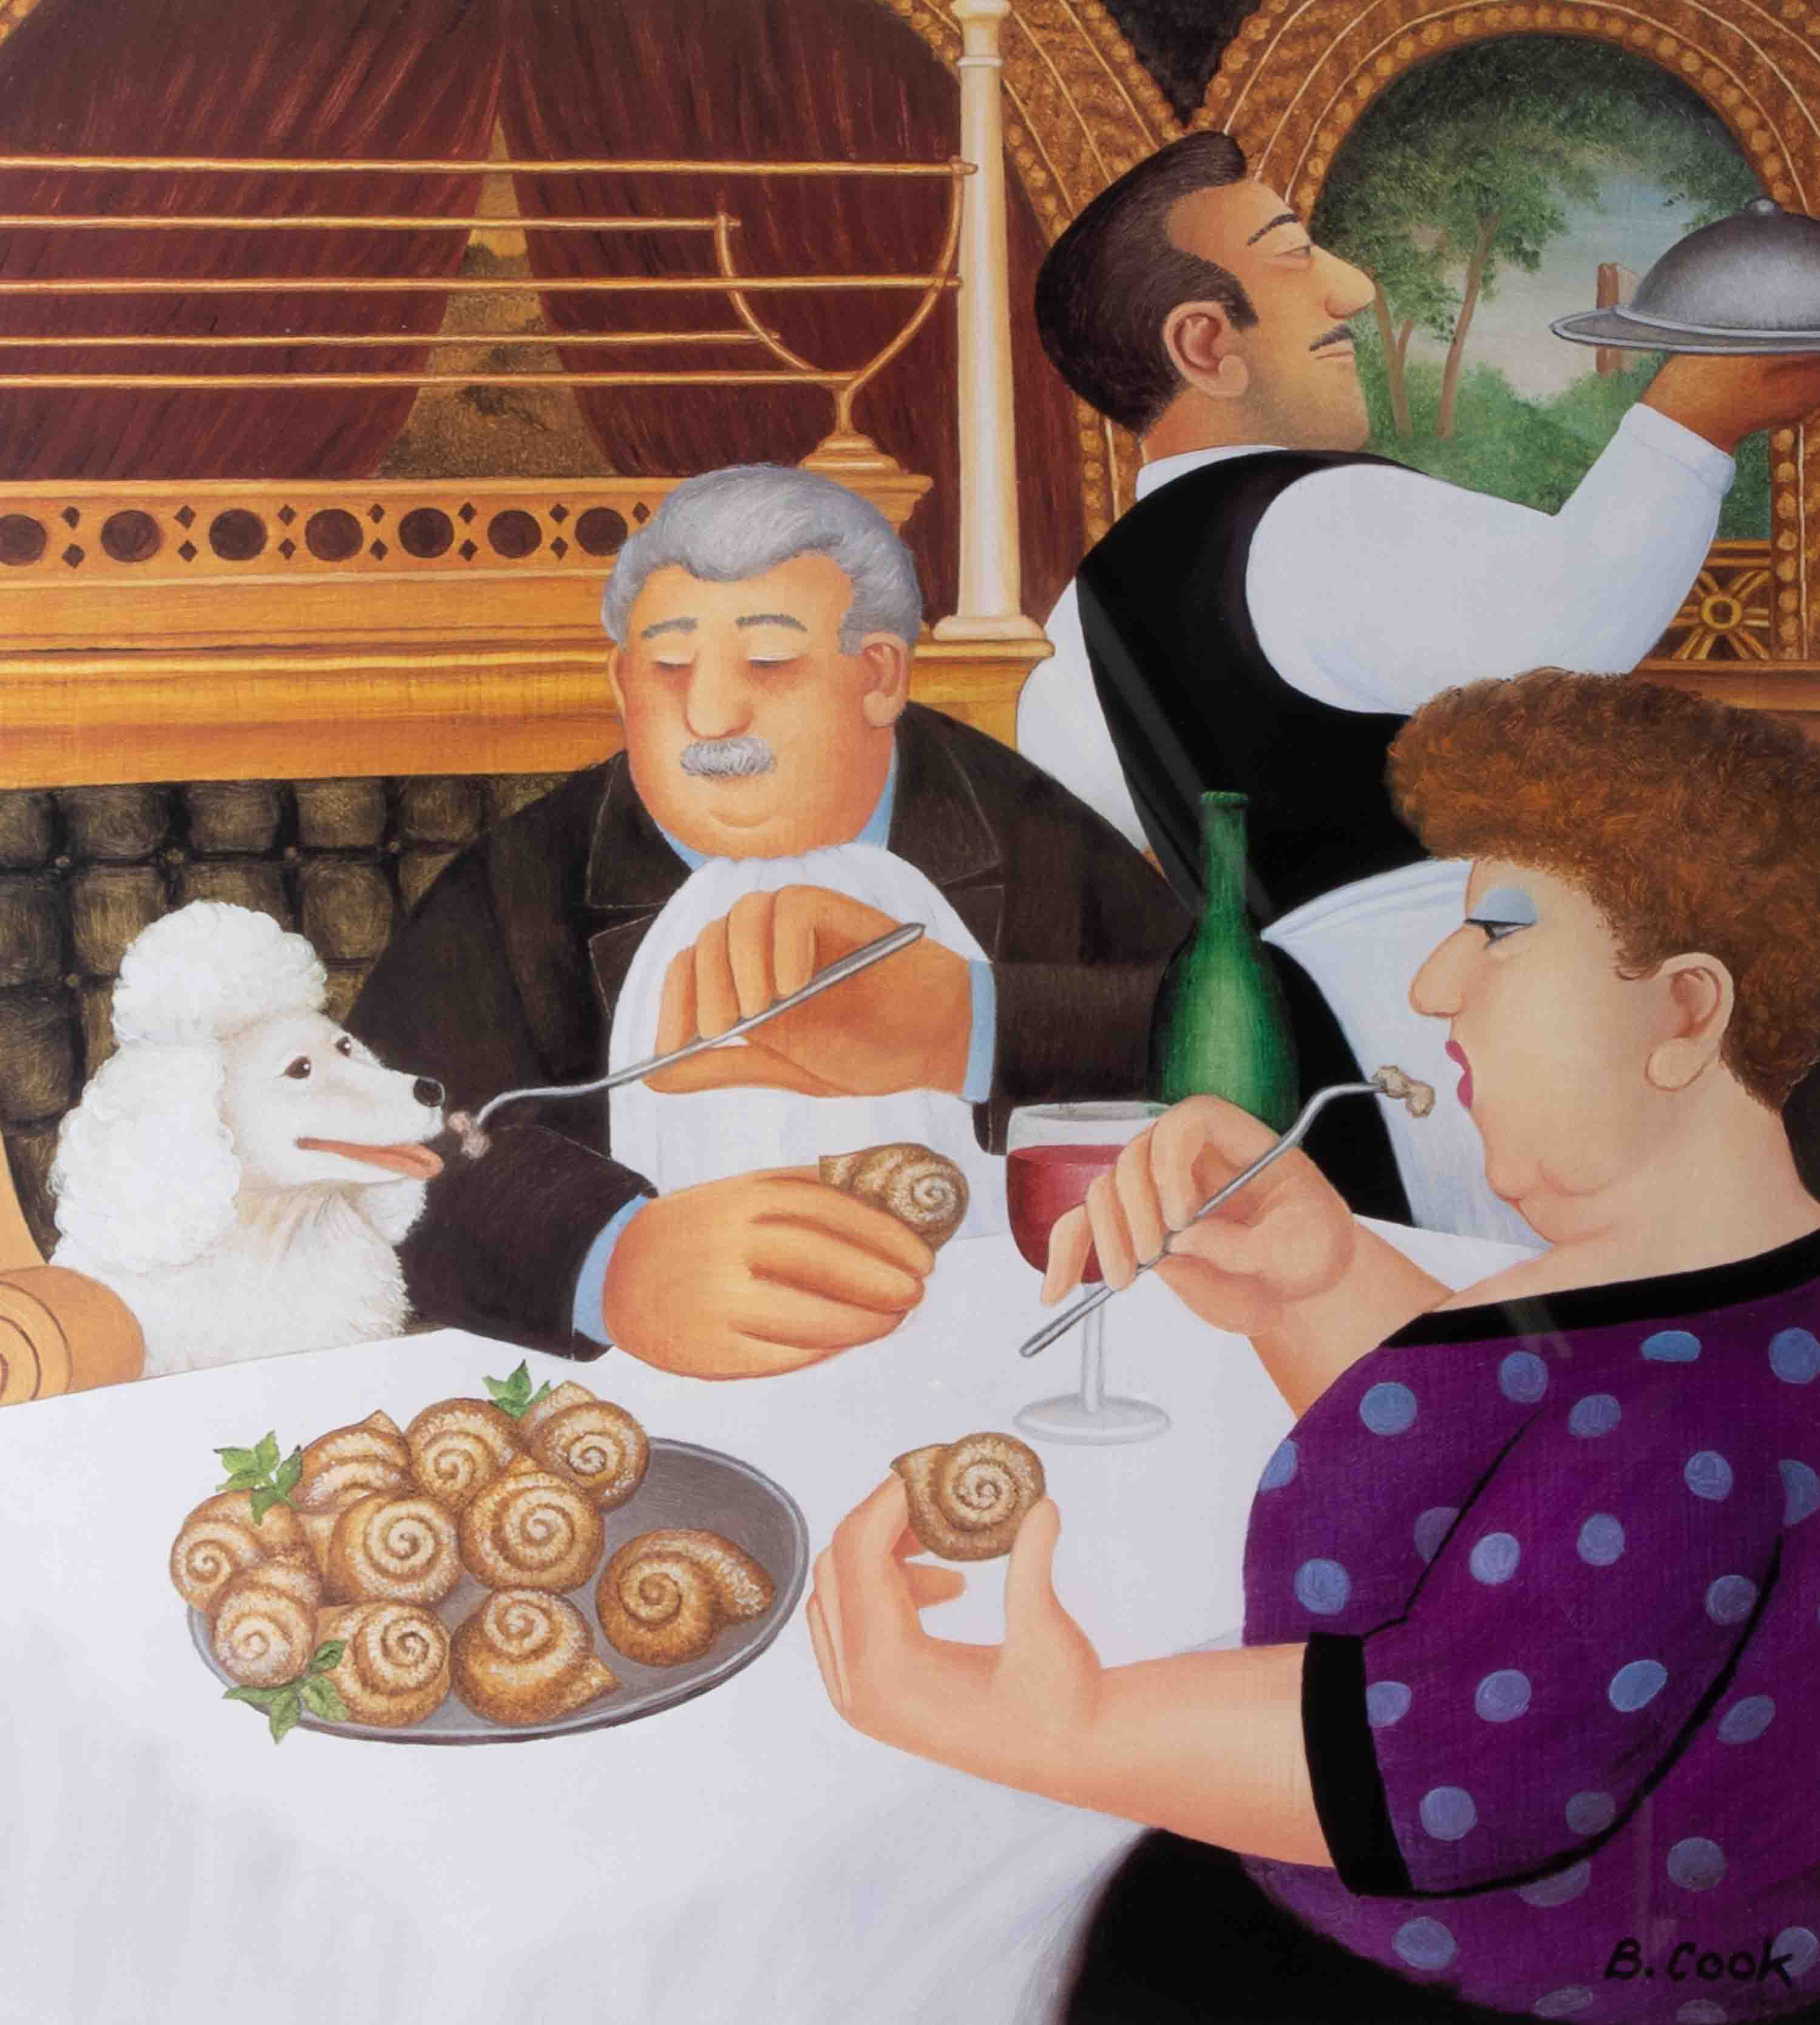 Beryl Cook (1926-2008) 'Dining In Paris' 2001 lithograph limited edition print 531/650, signed, 45cm - Image 2 of 2